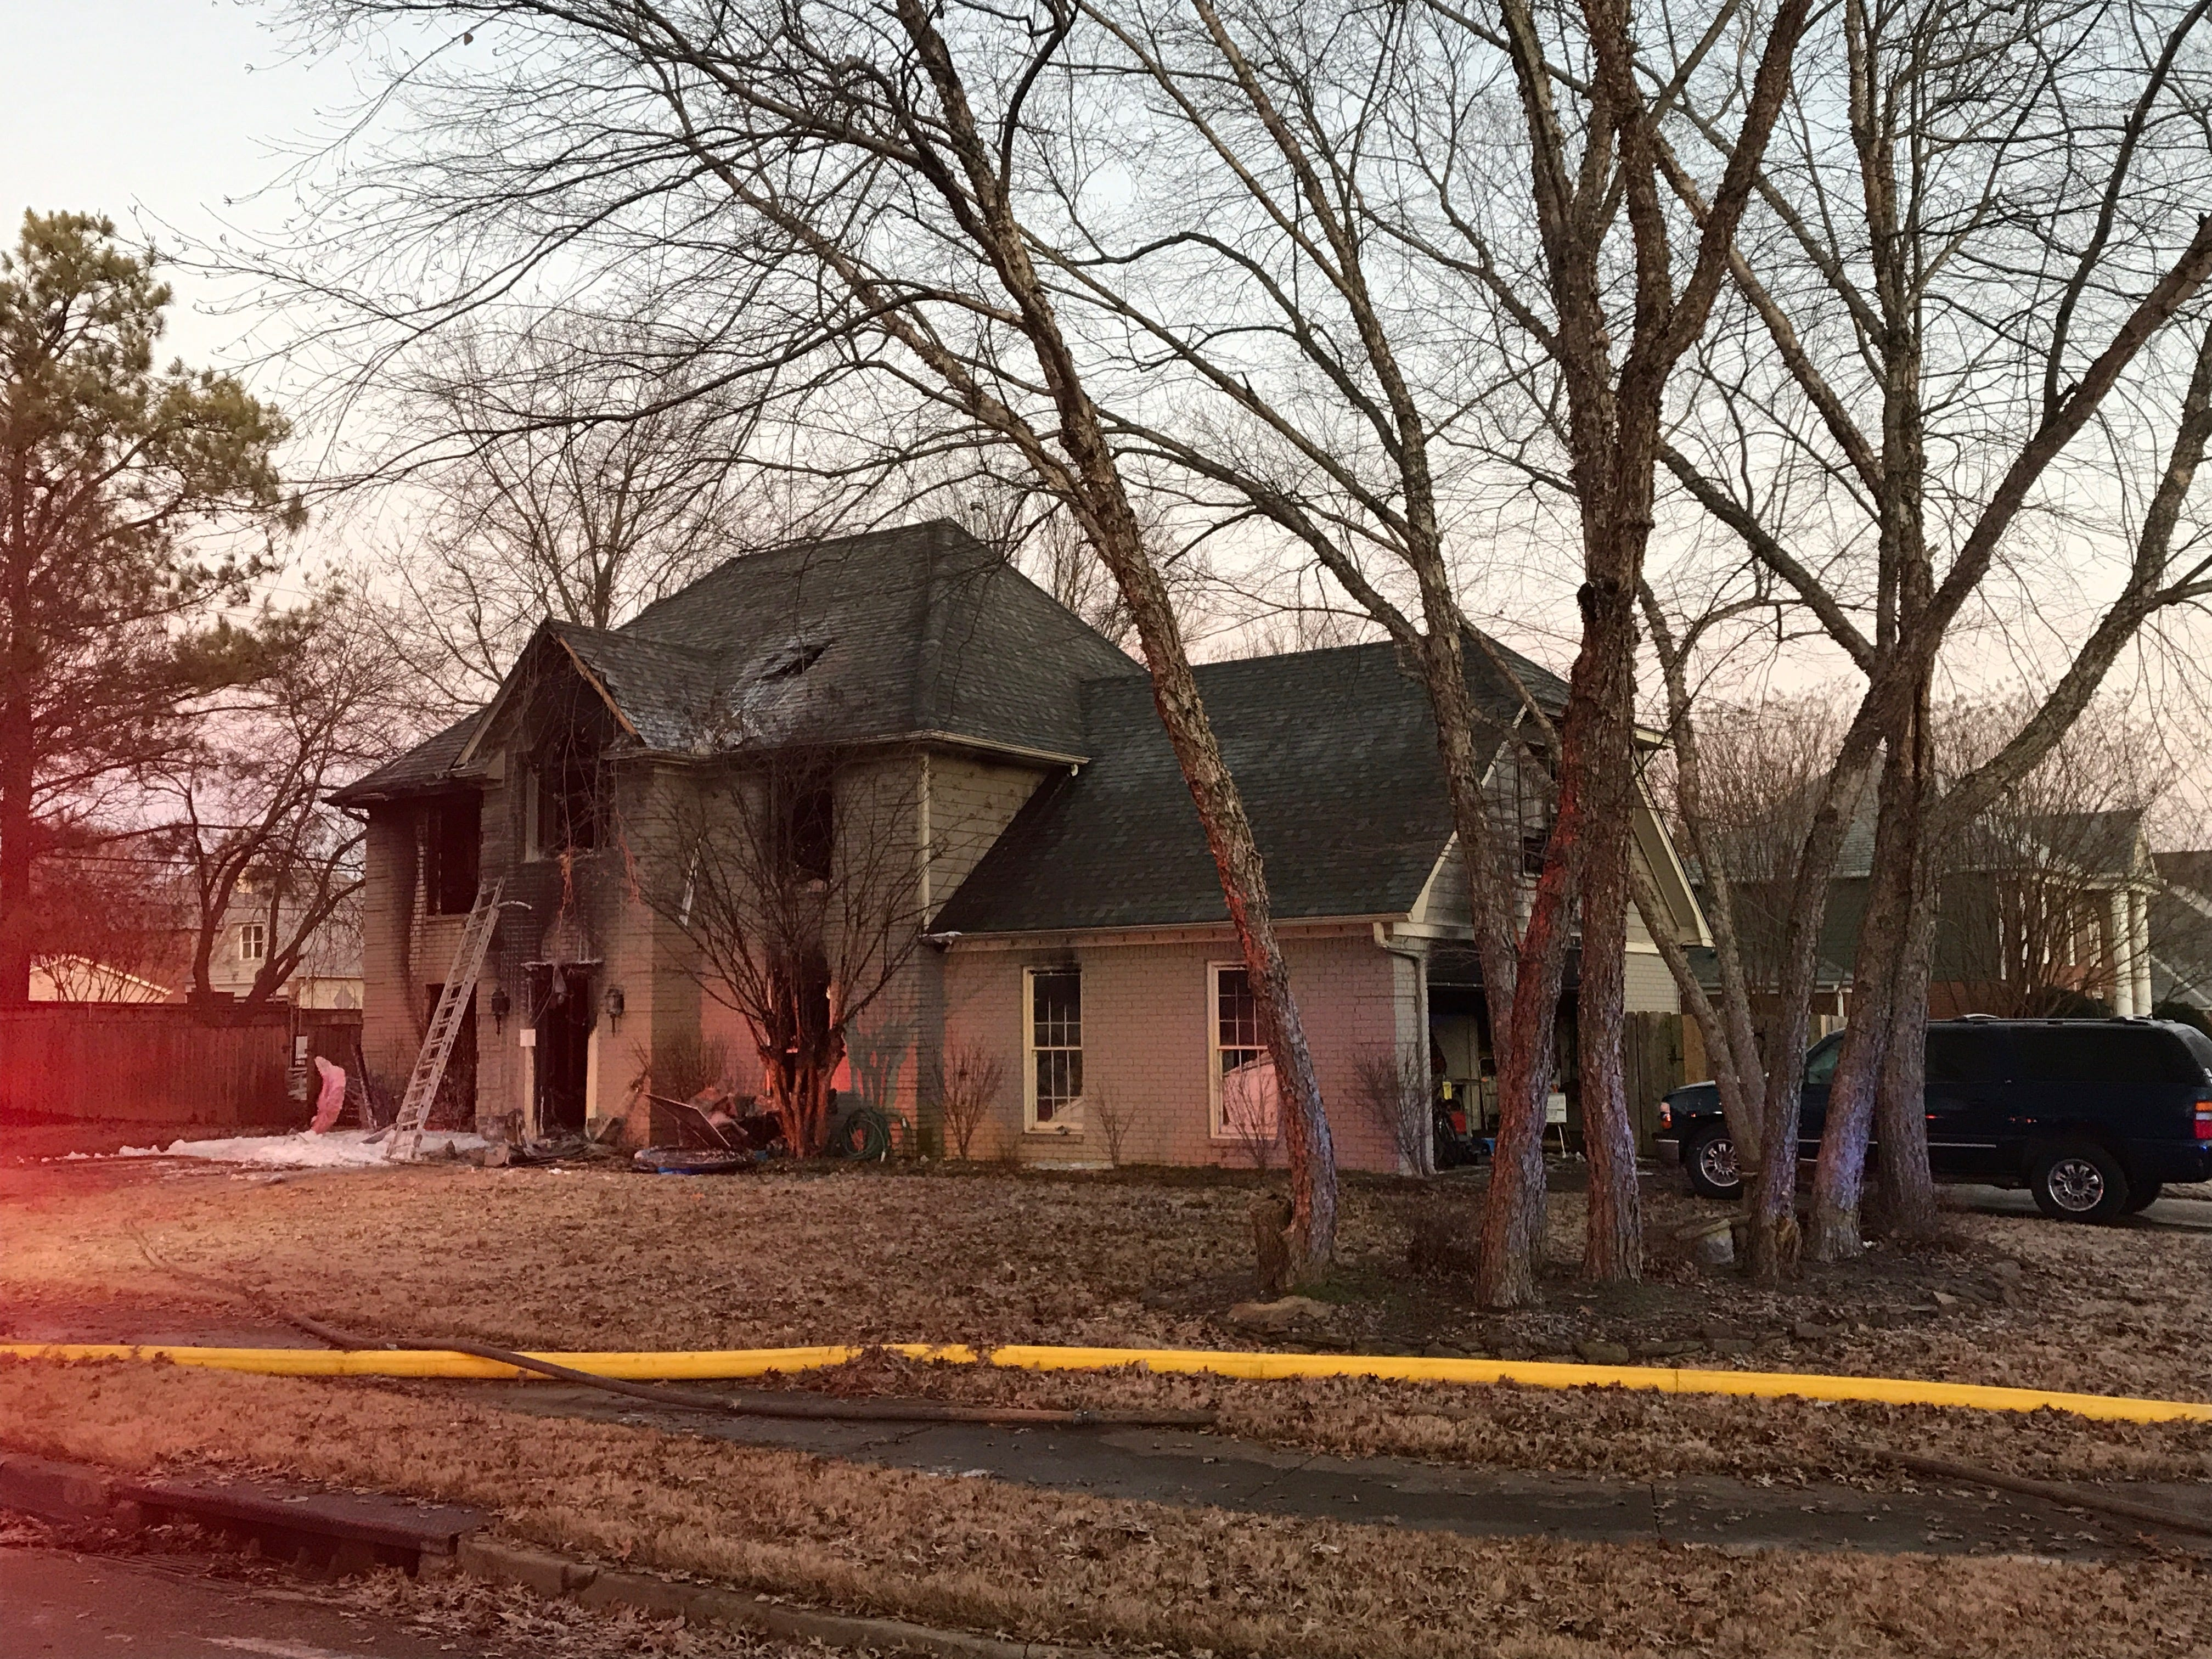 A fatal fire overnight in Collierville killed four people and injured two others on Autumn Winds Drive.